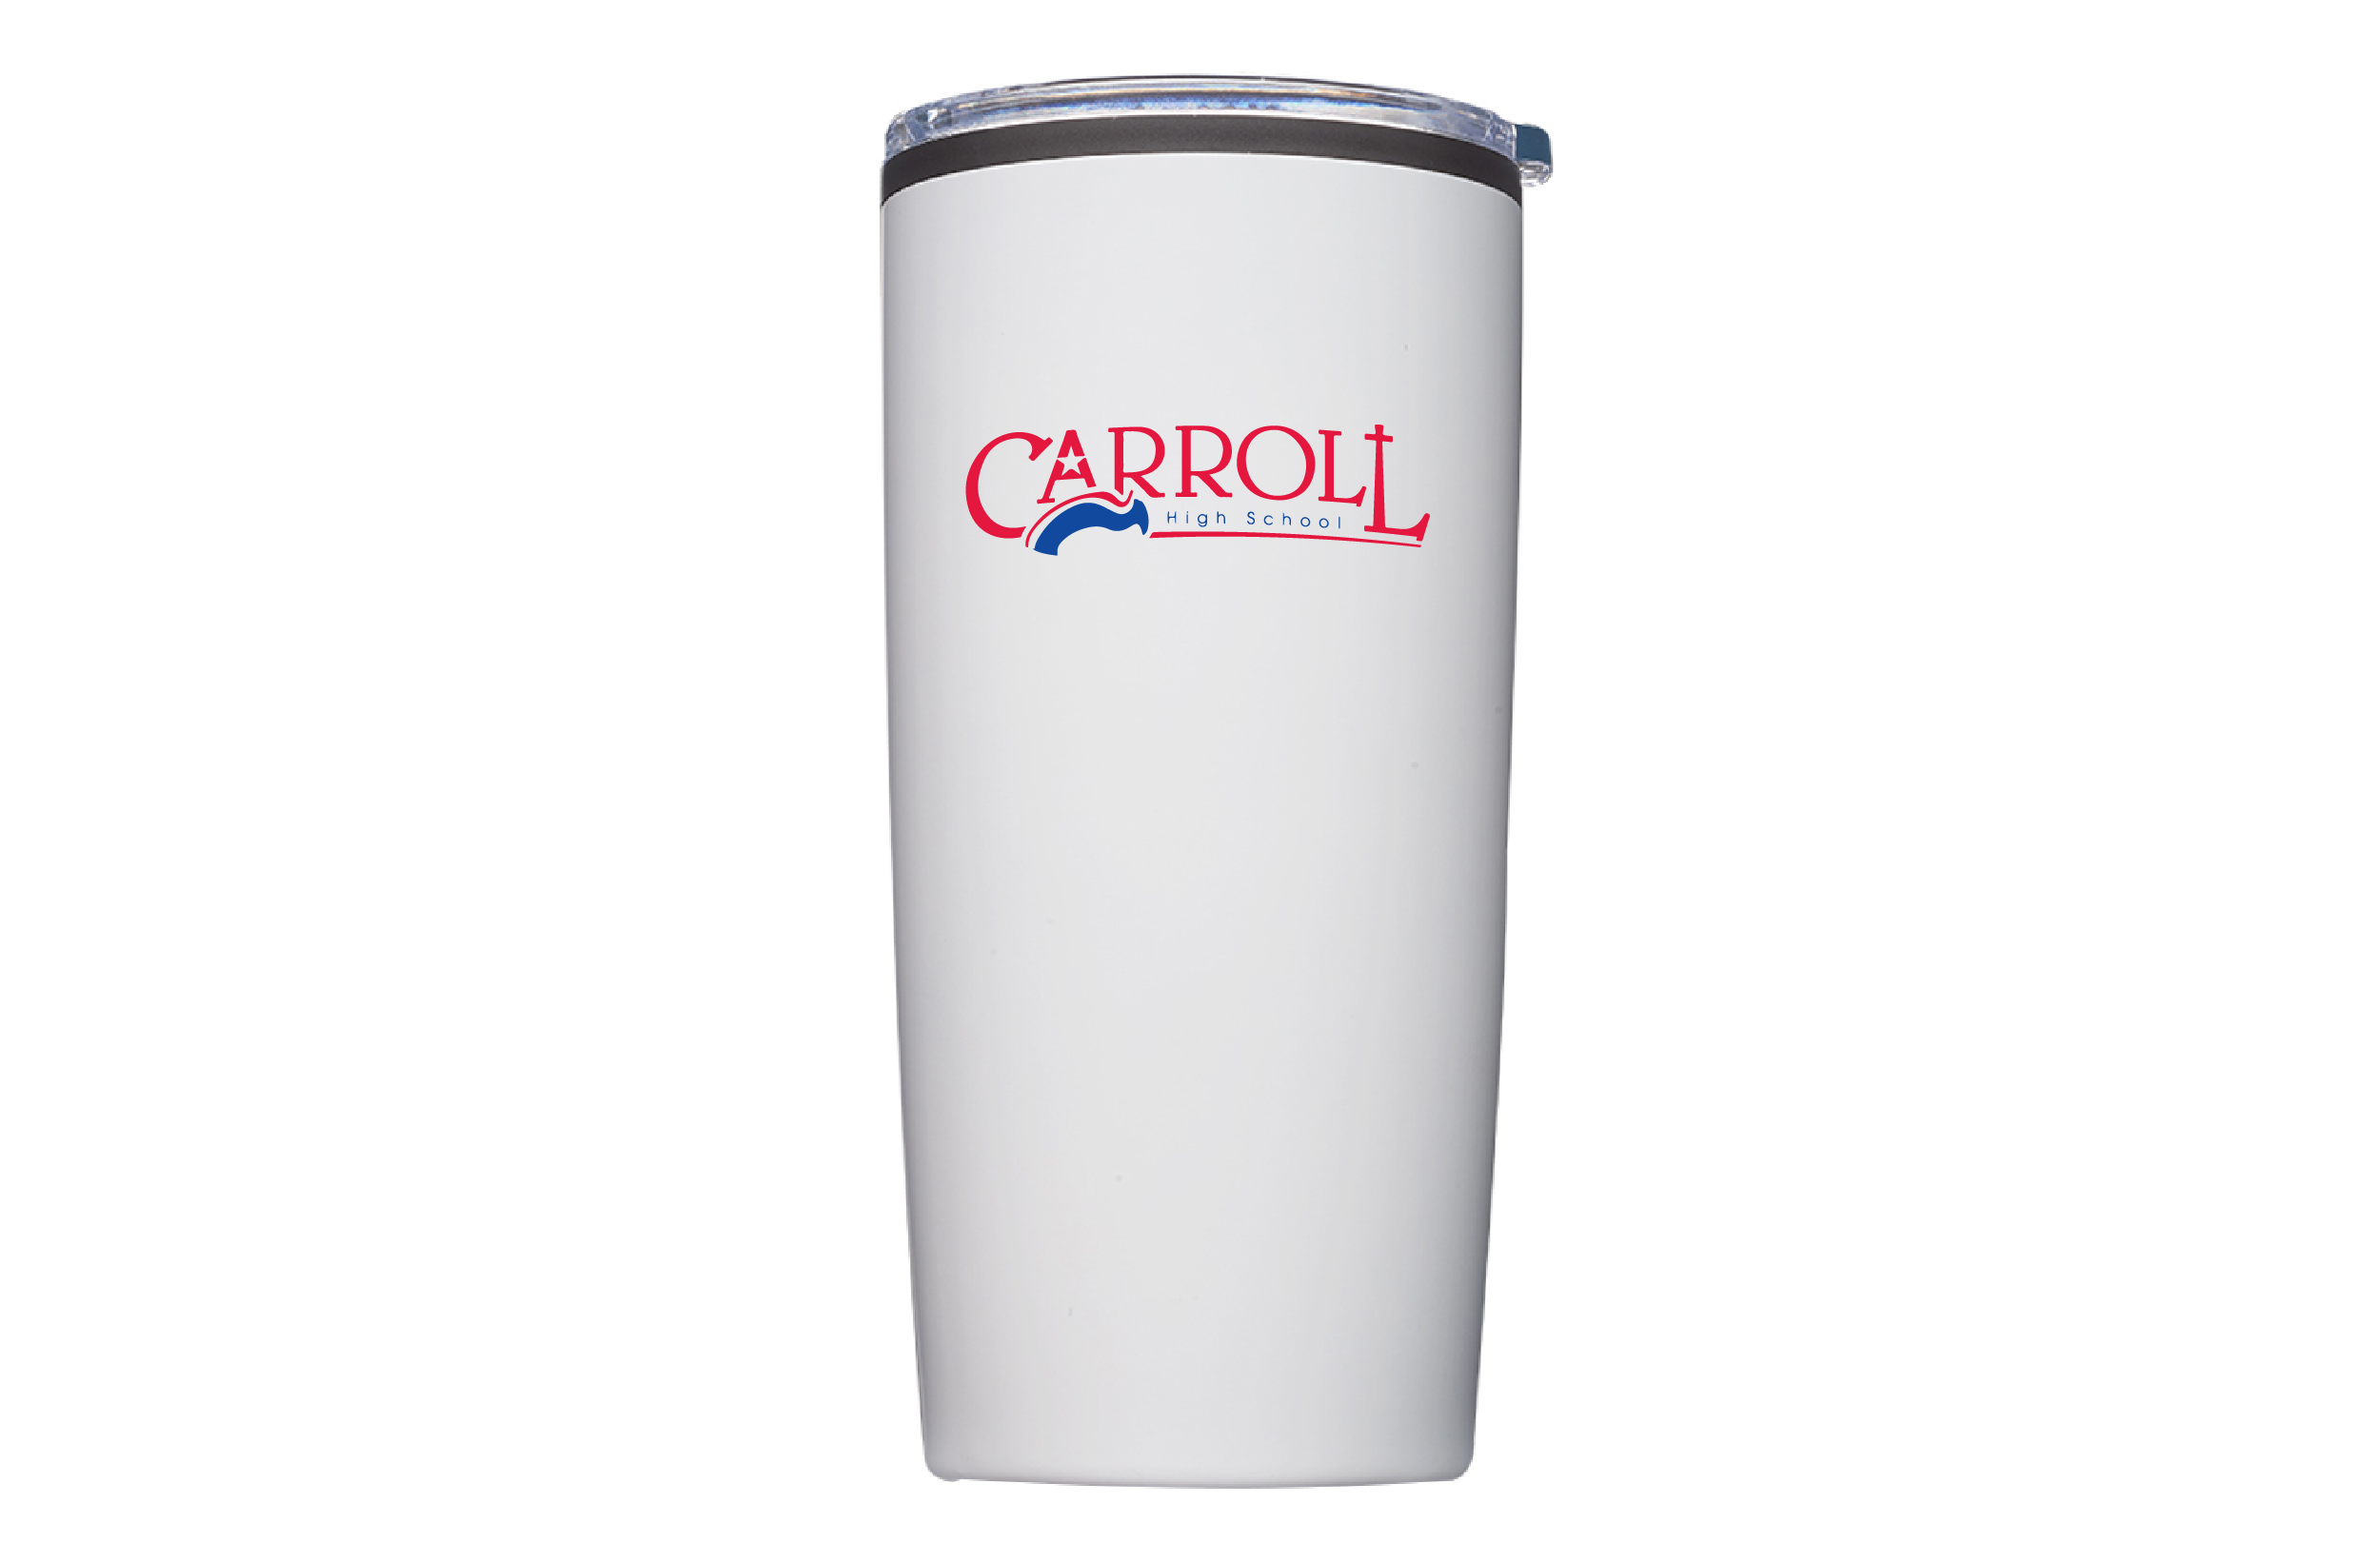 Carroll High School Tumbler